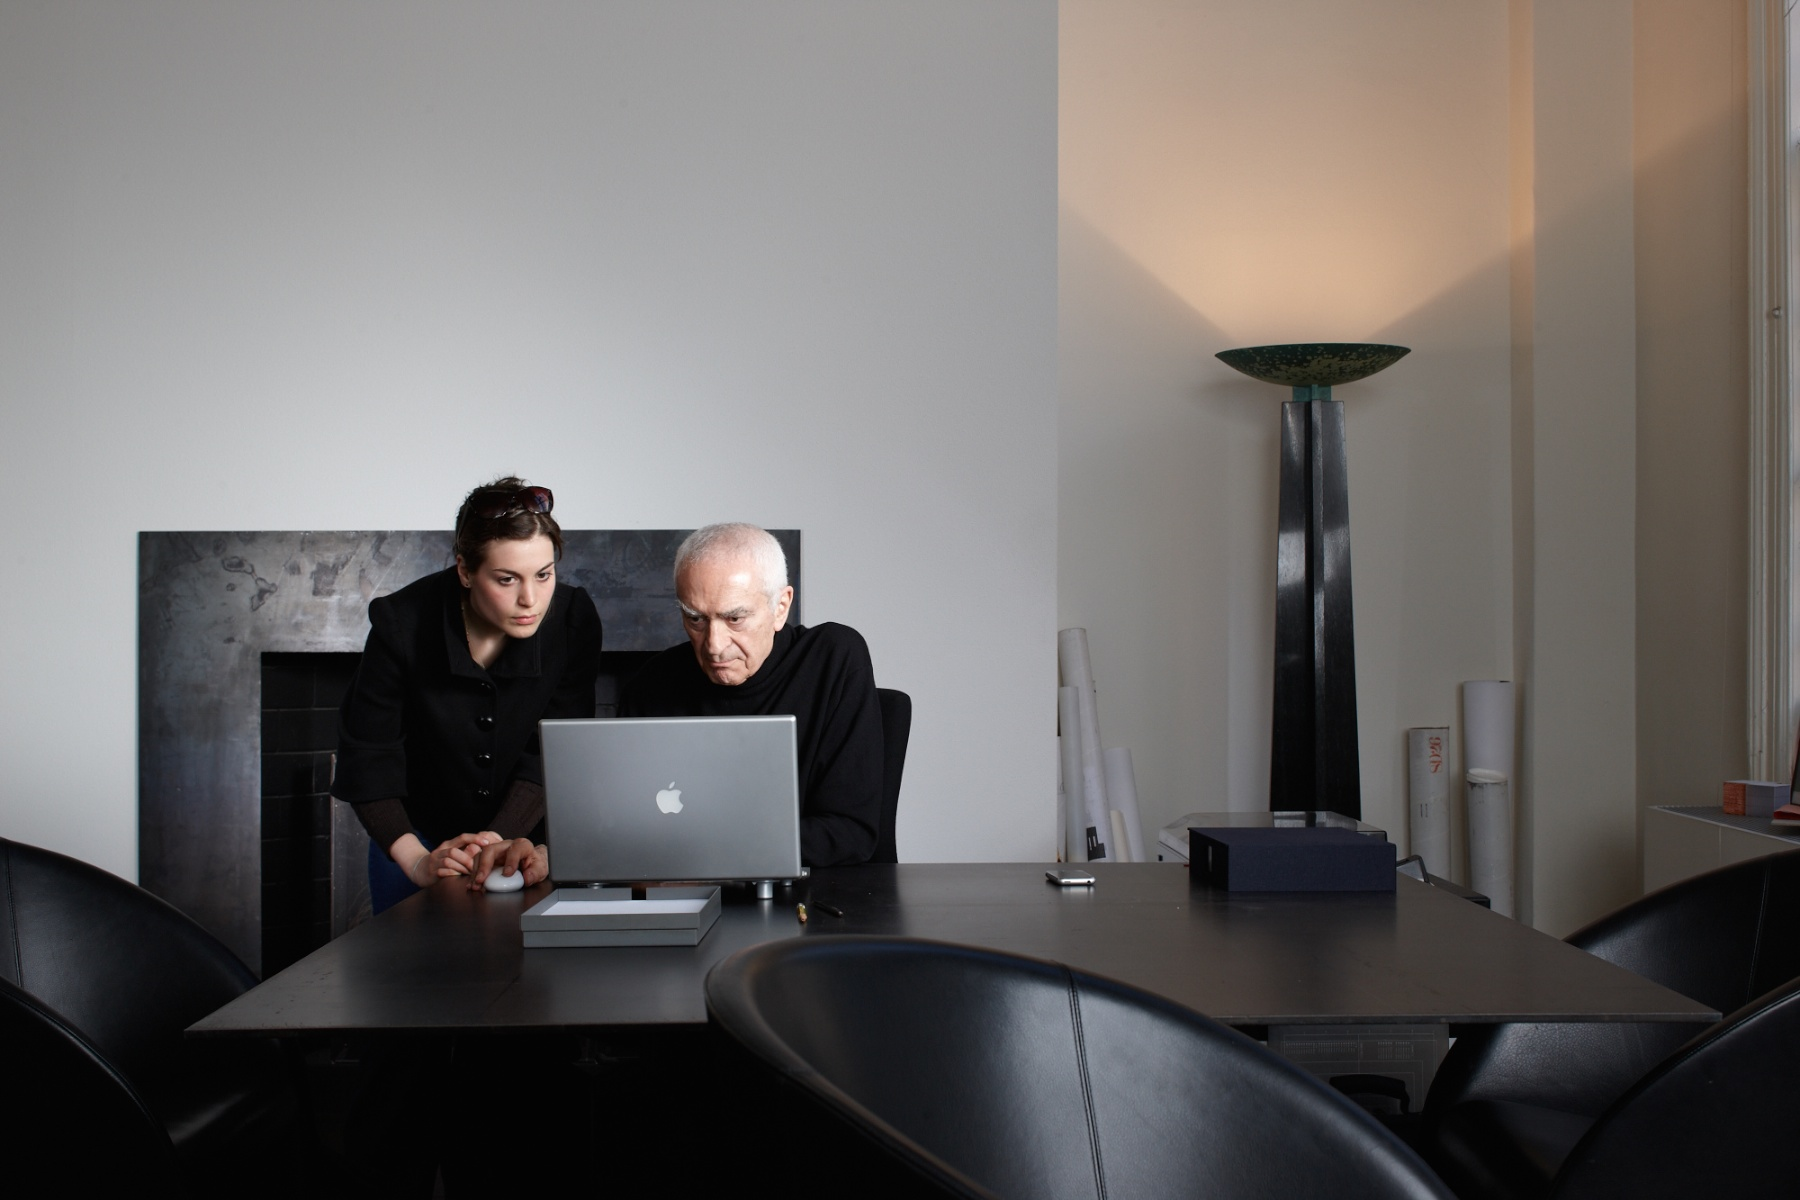 Massimo working with one of his designers at the incredibly uncluttered desk where he did much of his design.